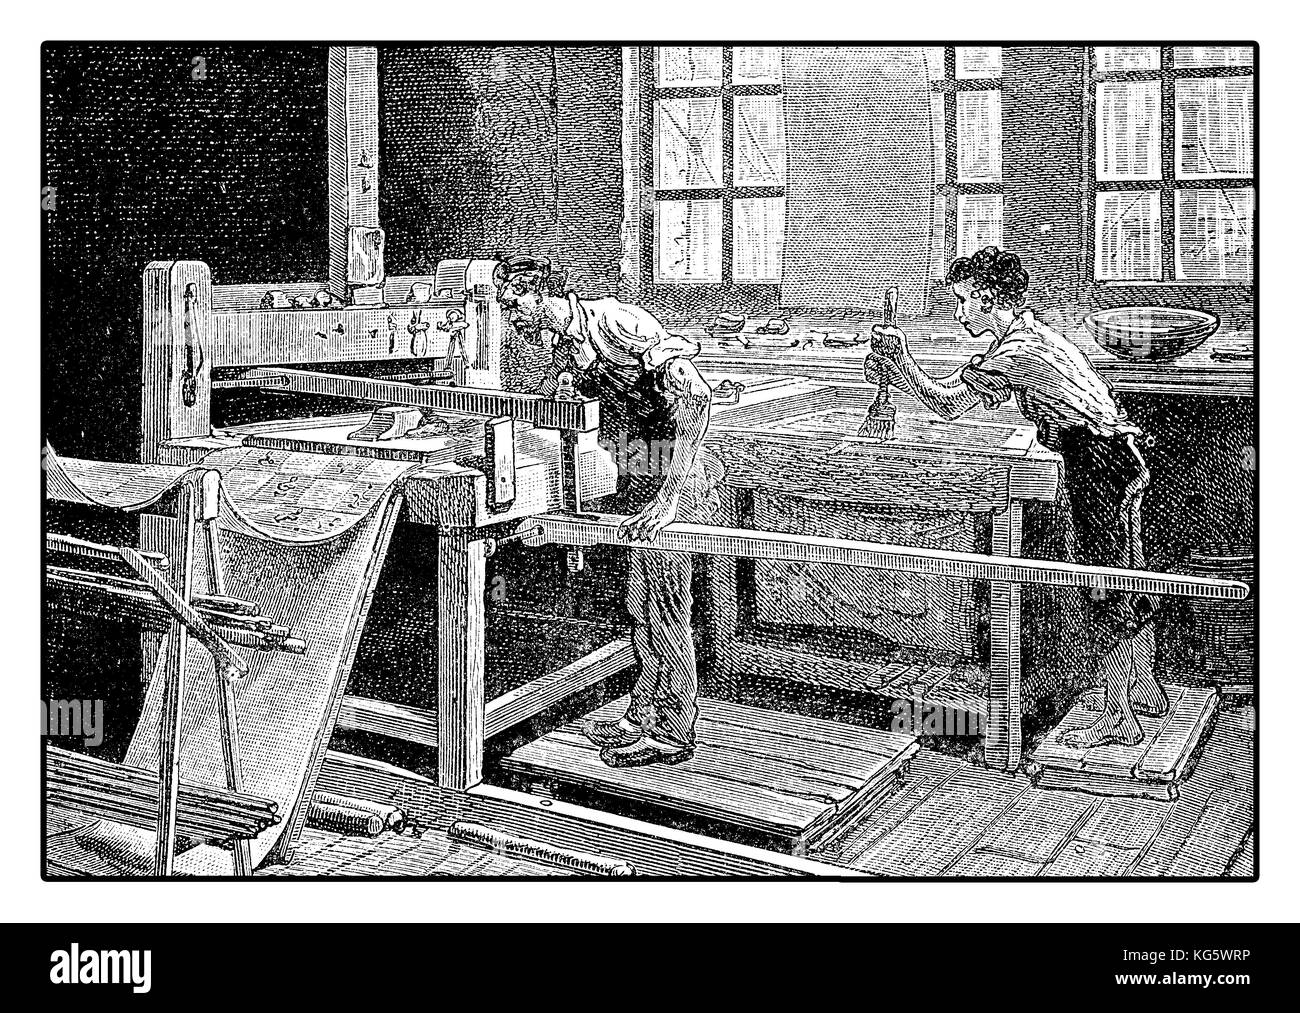 Printing tablecloth by hand, XIX century workshop - Stock Image